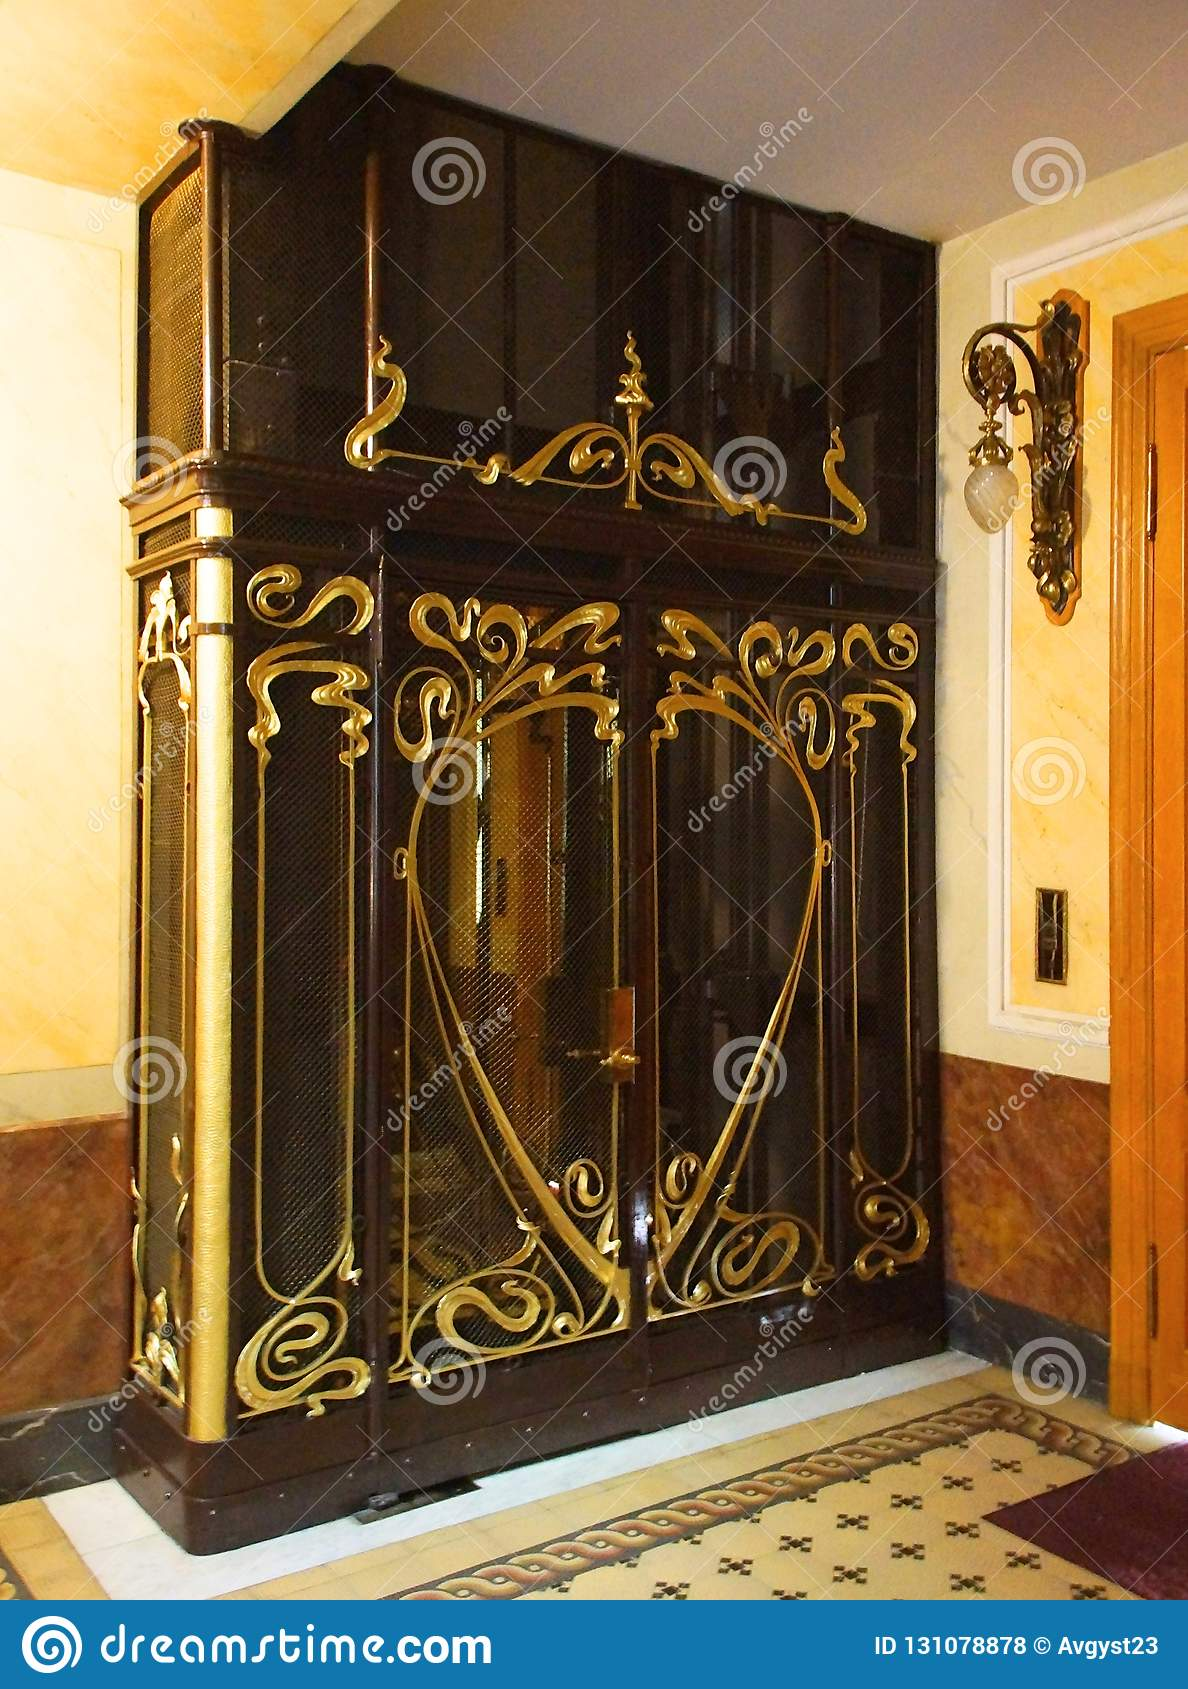 Portal Of The Lift In The Art Nouveau Style Stock Photo